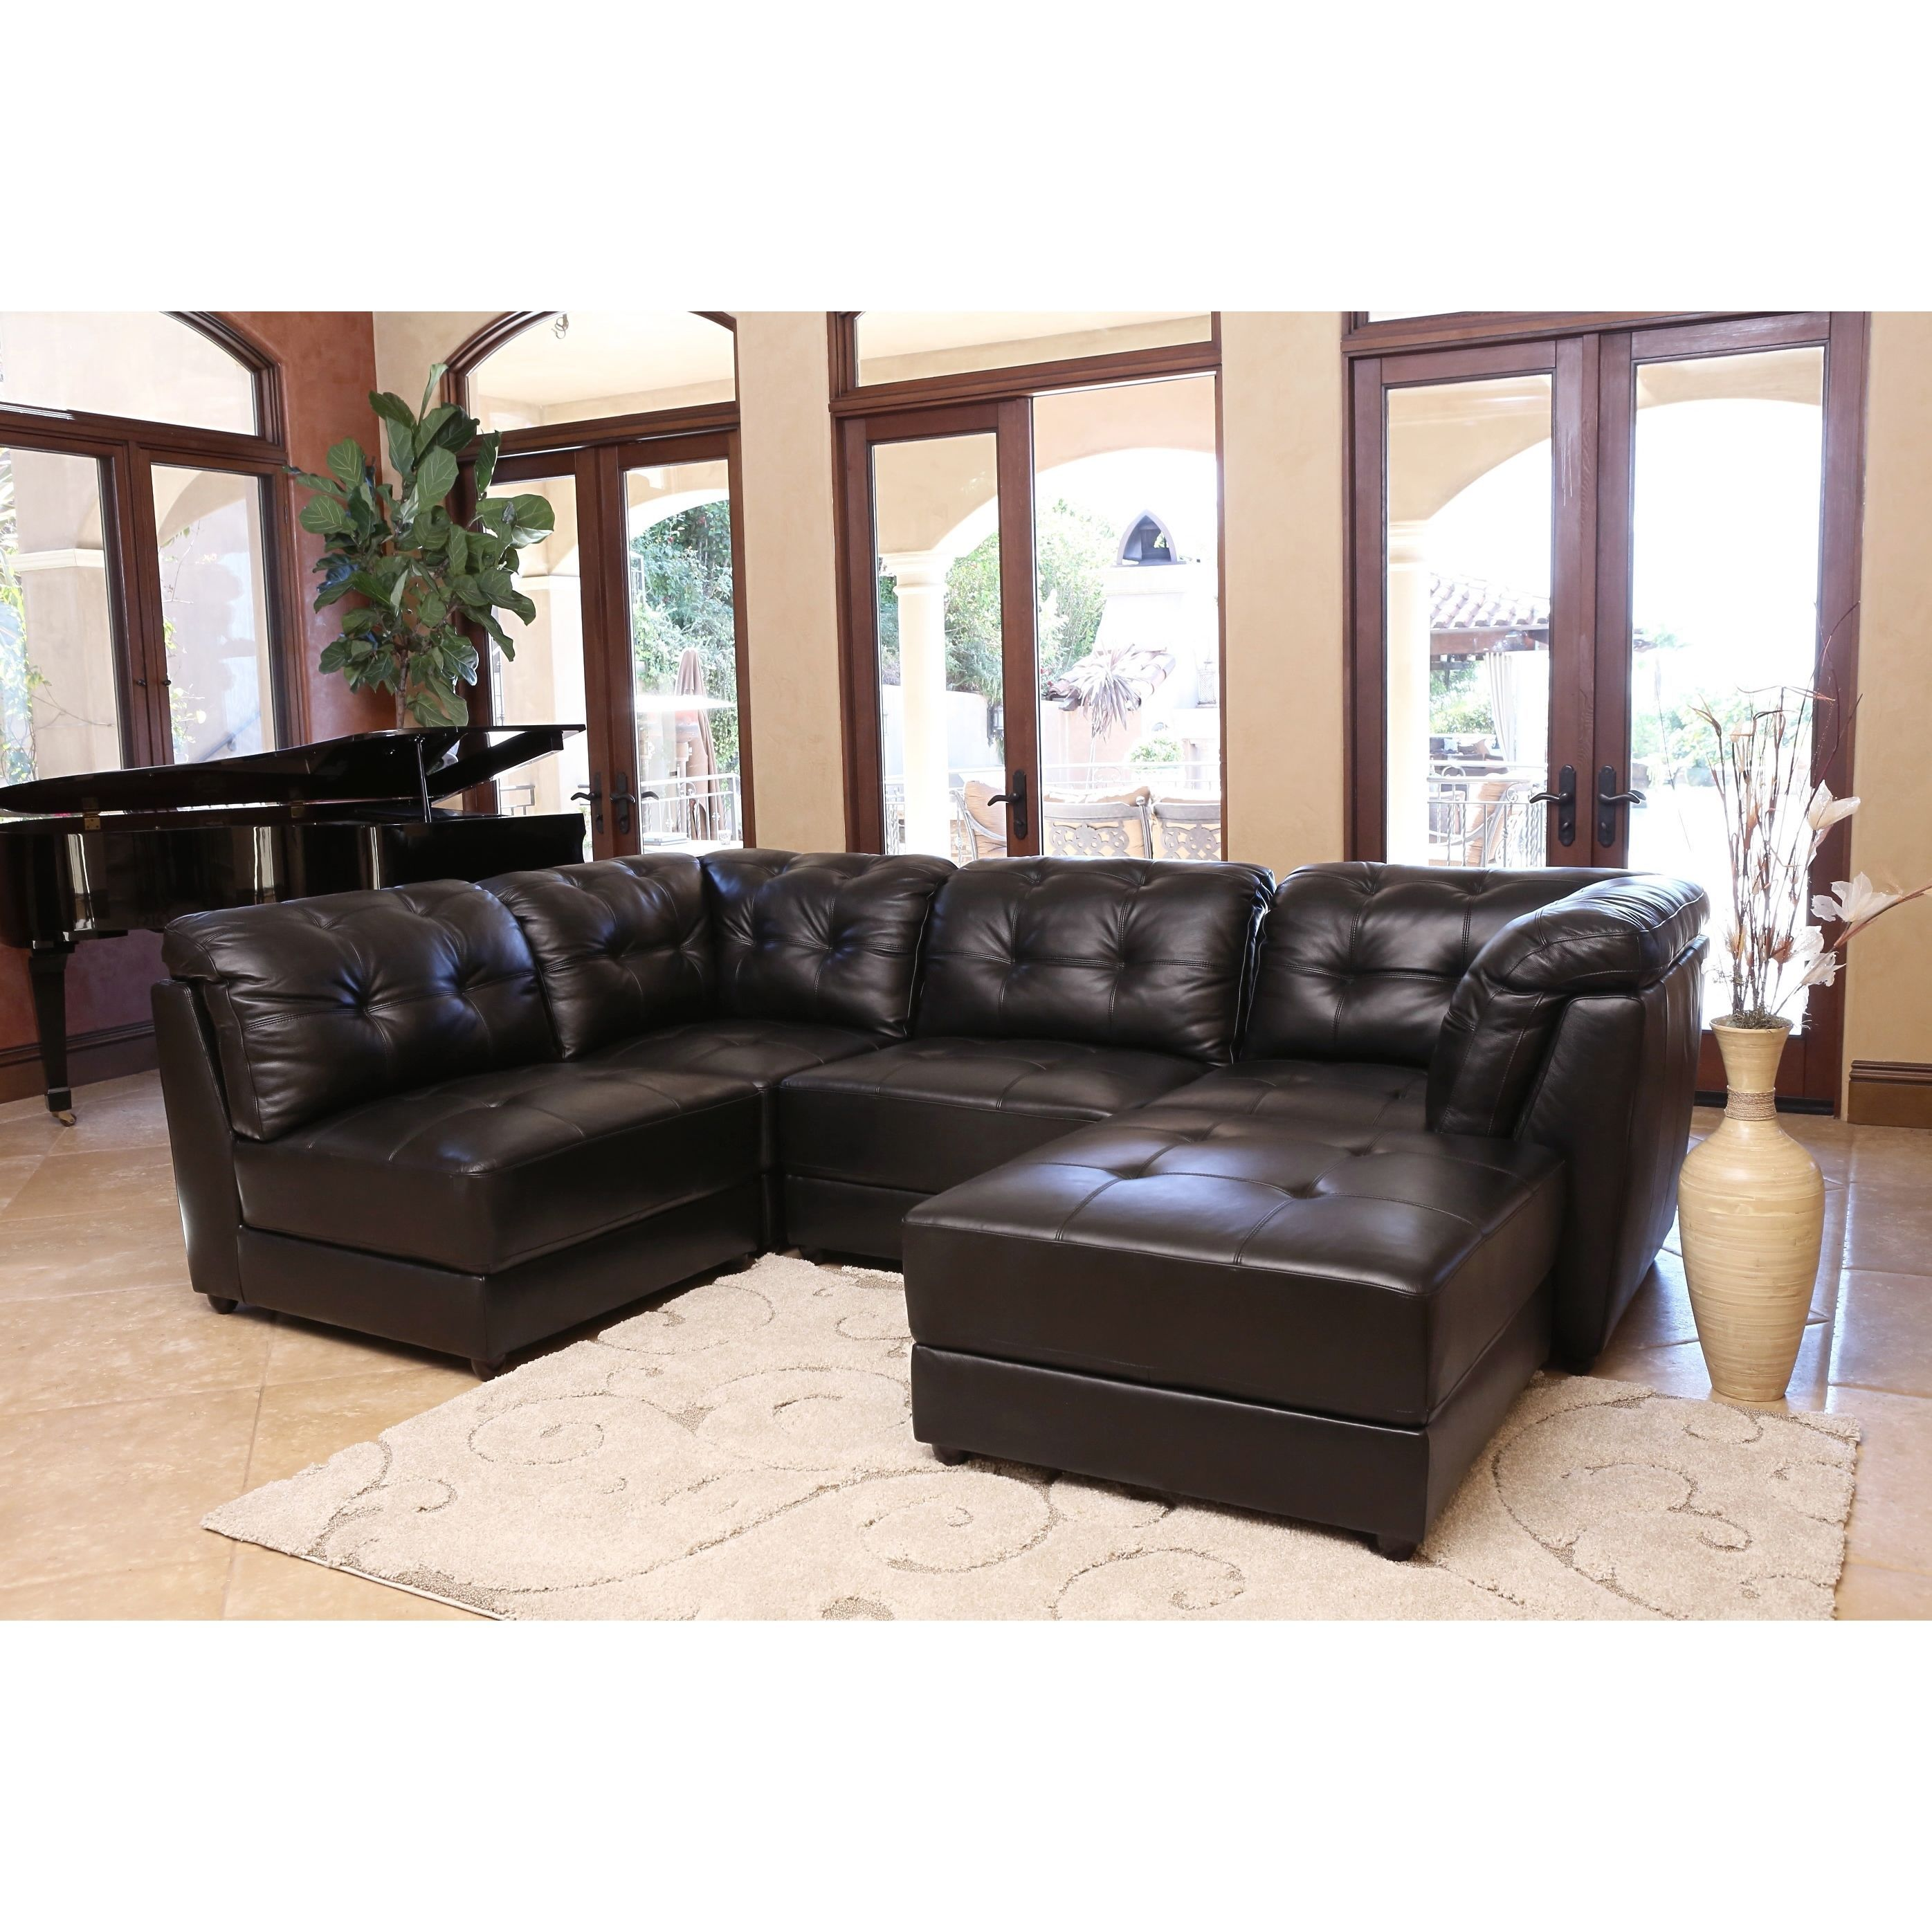 Abbyson Ella 5-piece Black Modular Leather Sectional by Abbyson  sc 1 st  Pinterest : 5 piece leather sectional - Sectionals, Sofas & Couches